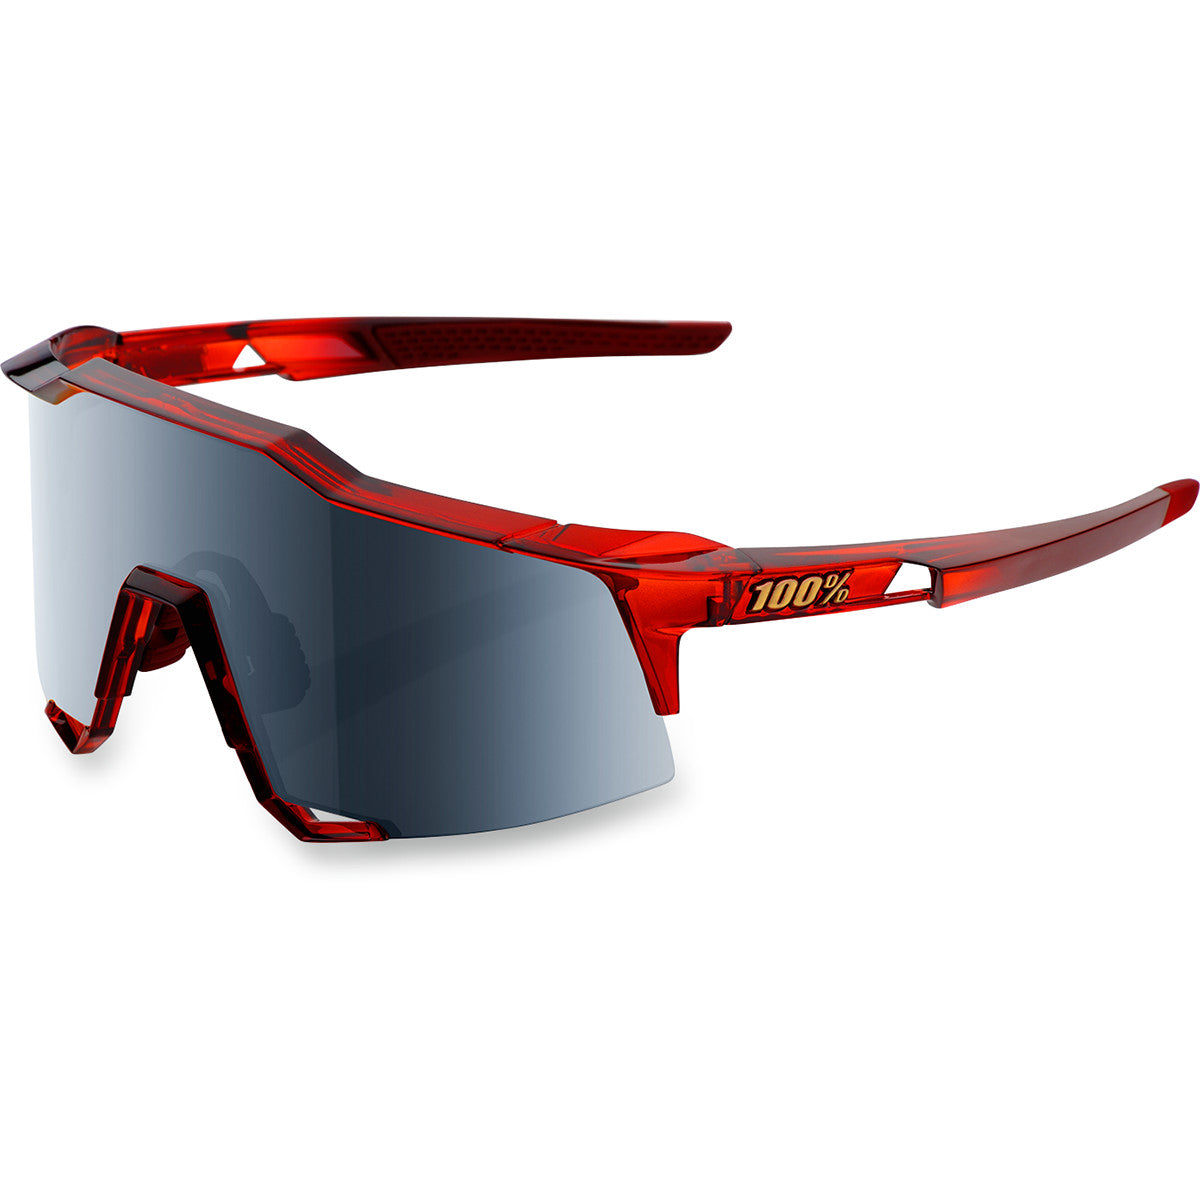 100% Performance Sunglasses